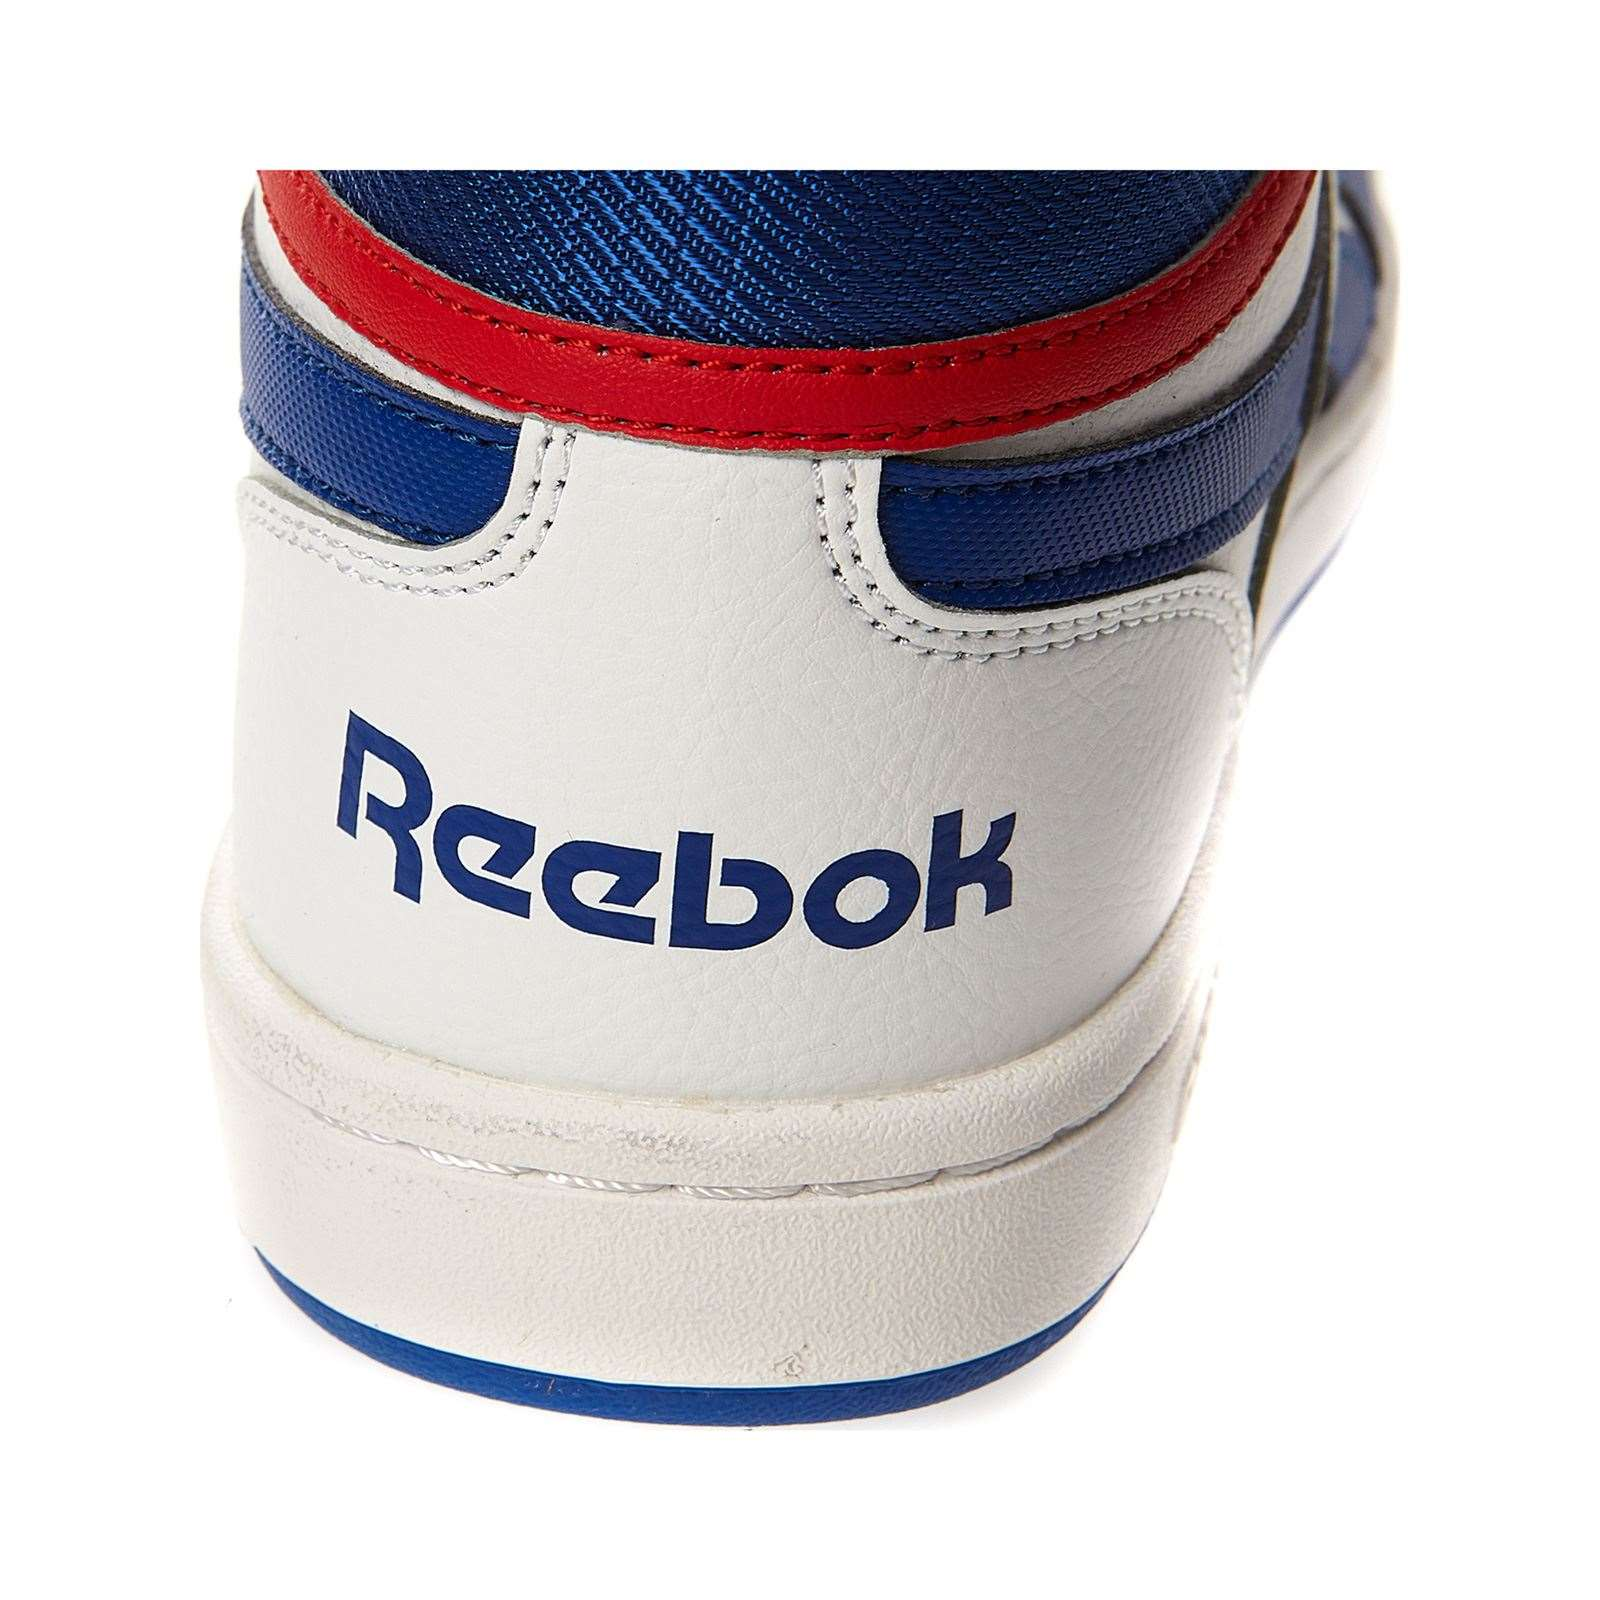 2d9b12765ff1f Reebok Performance Baskets montantes - rouge